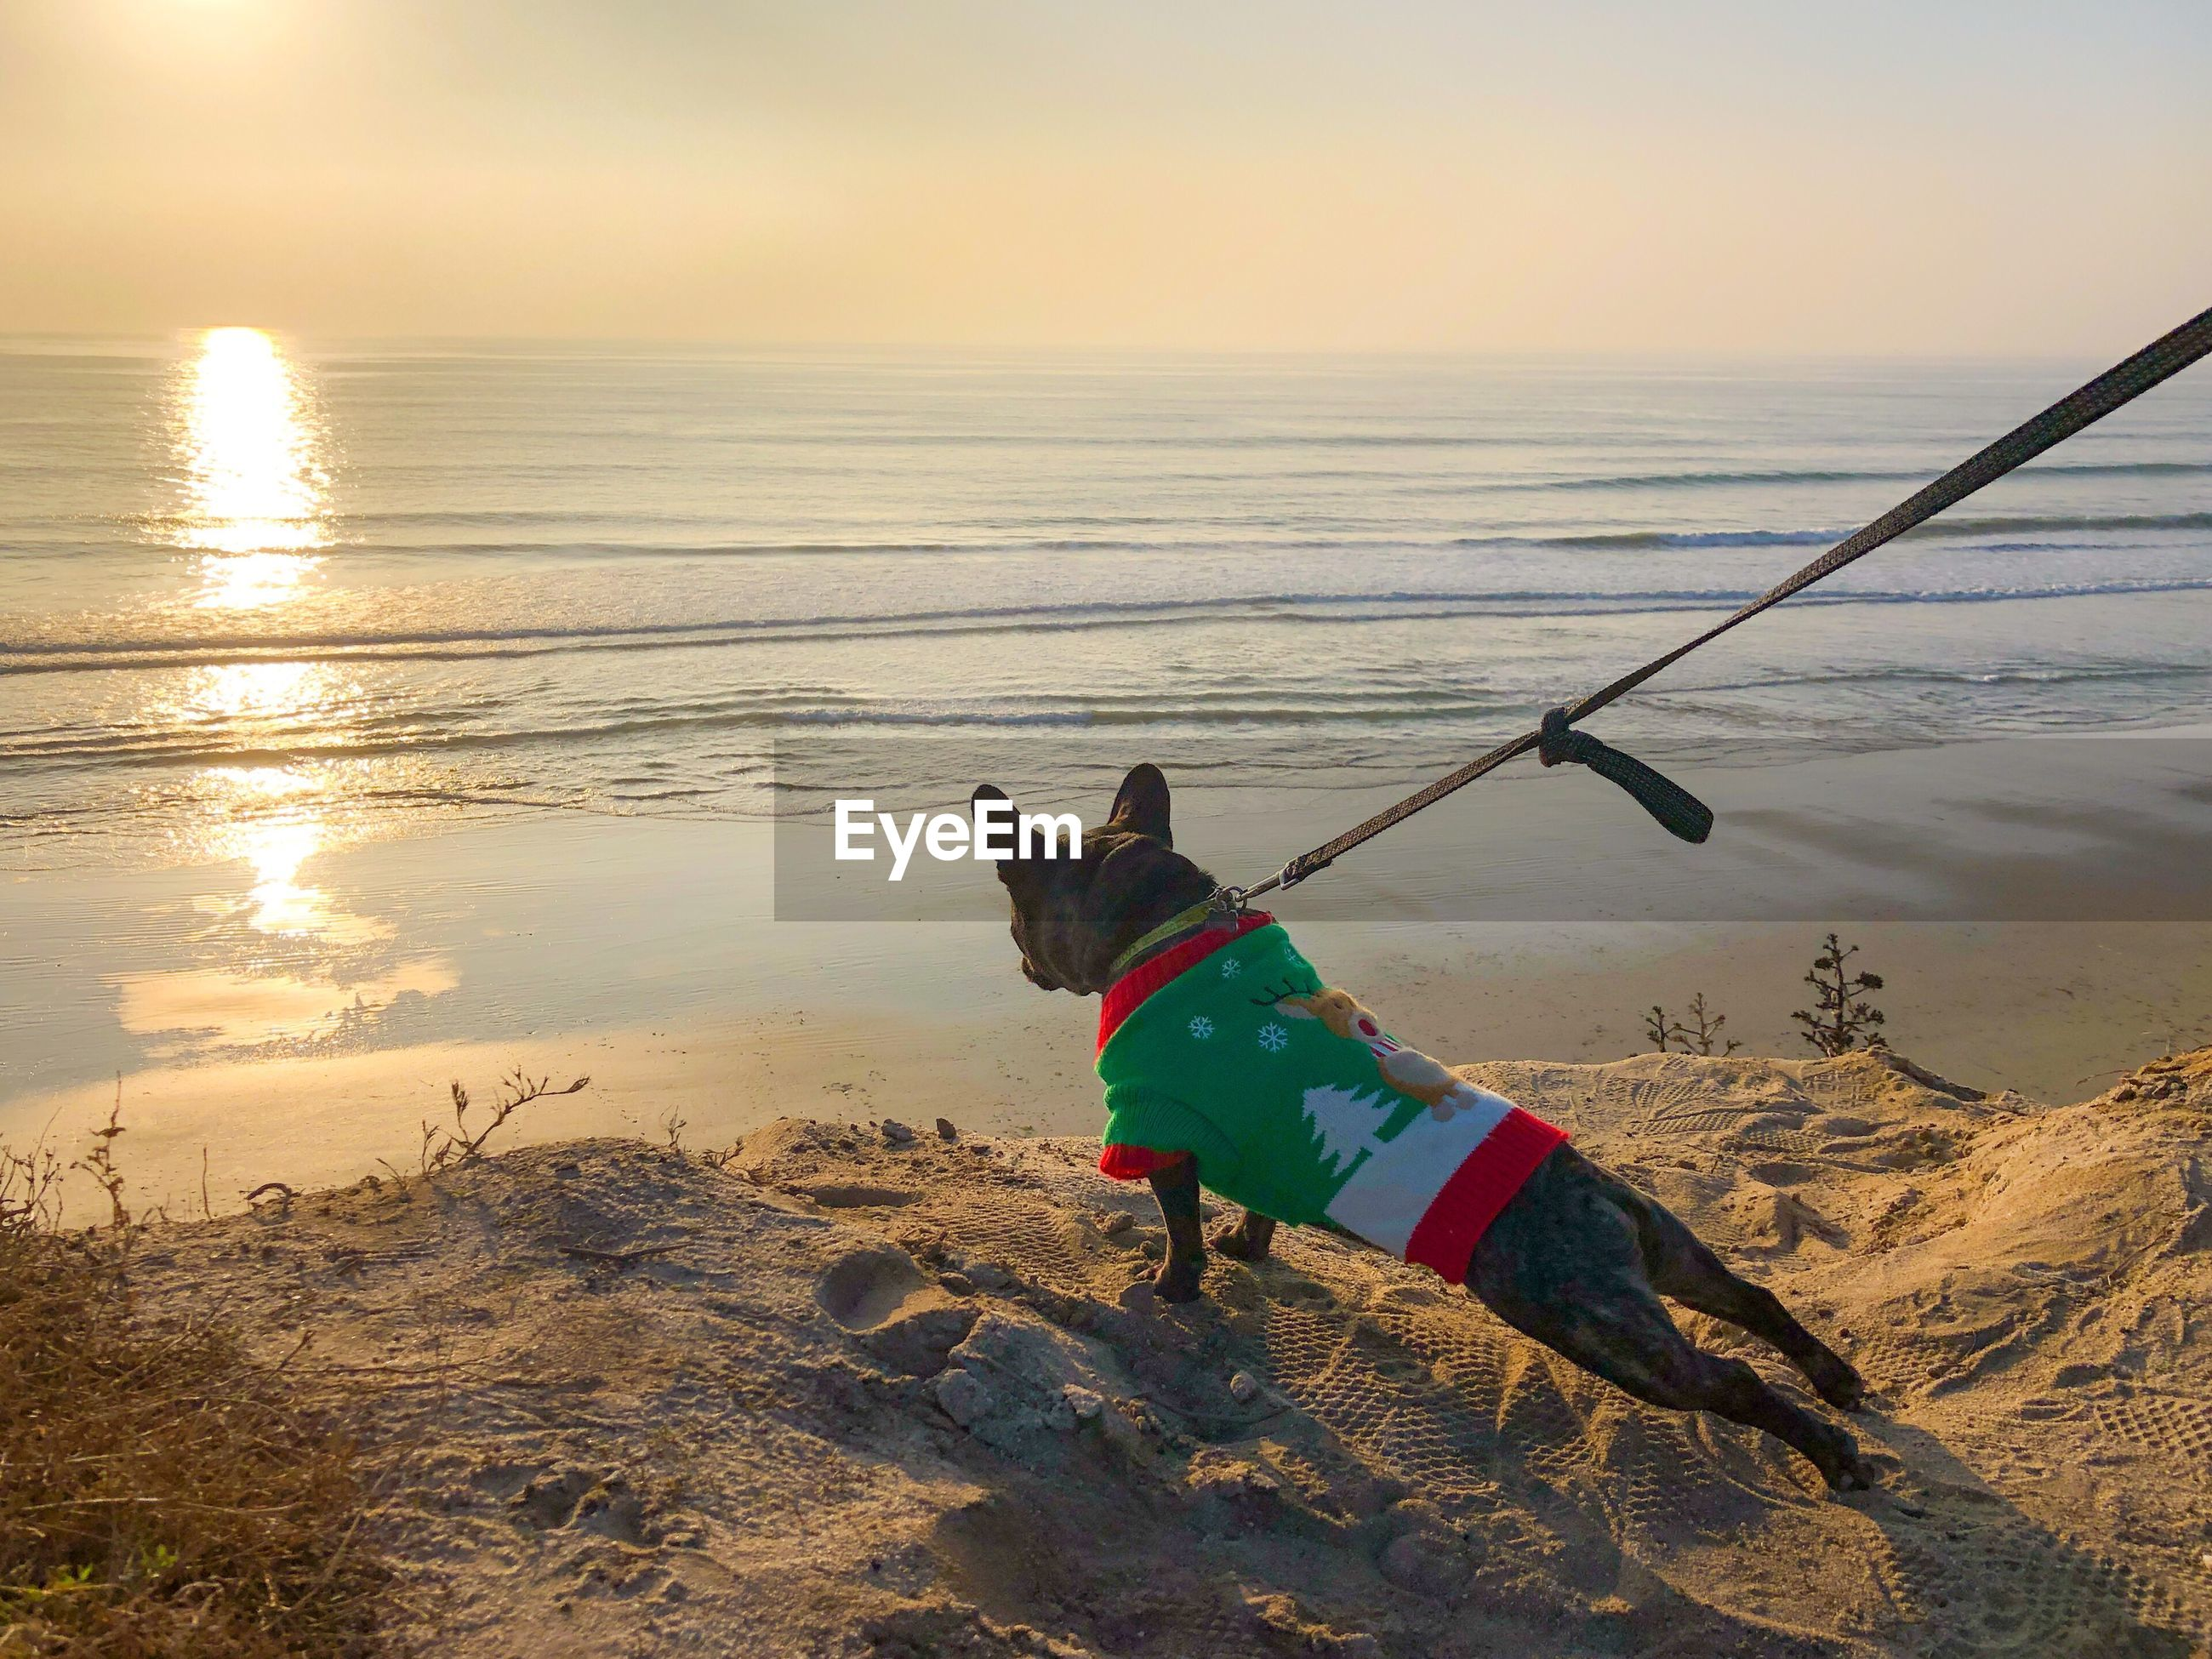 French bulldog in holiday sweater overlooking ocean and beach in carlsbad, san diego, california